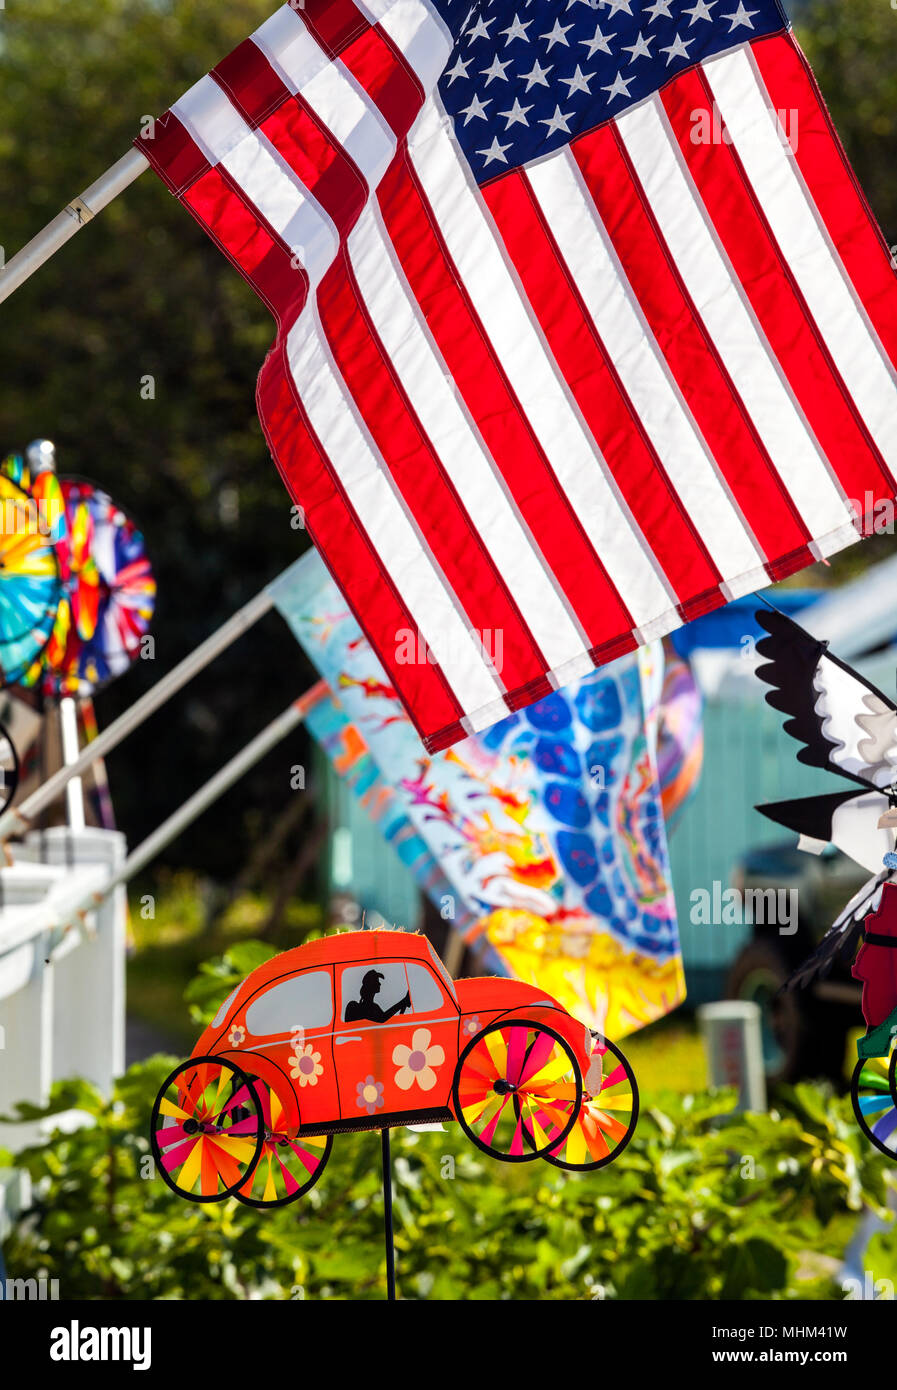 NC01582-00...NORTH CAROLINA - Flags and wind spinners on Ocracoke Island part of the Outer Banks. - Stock Image